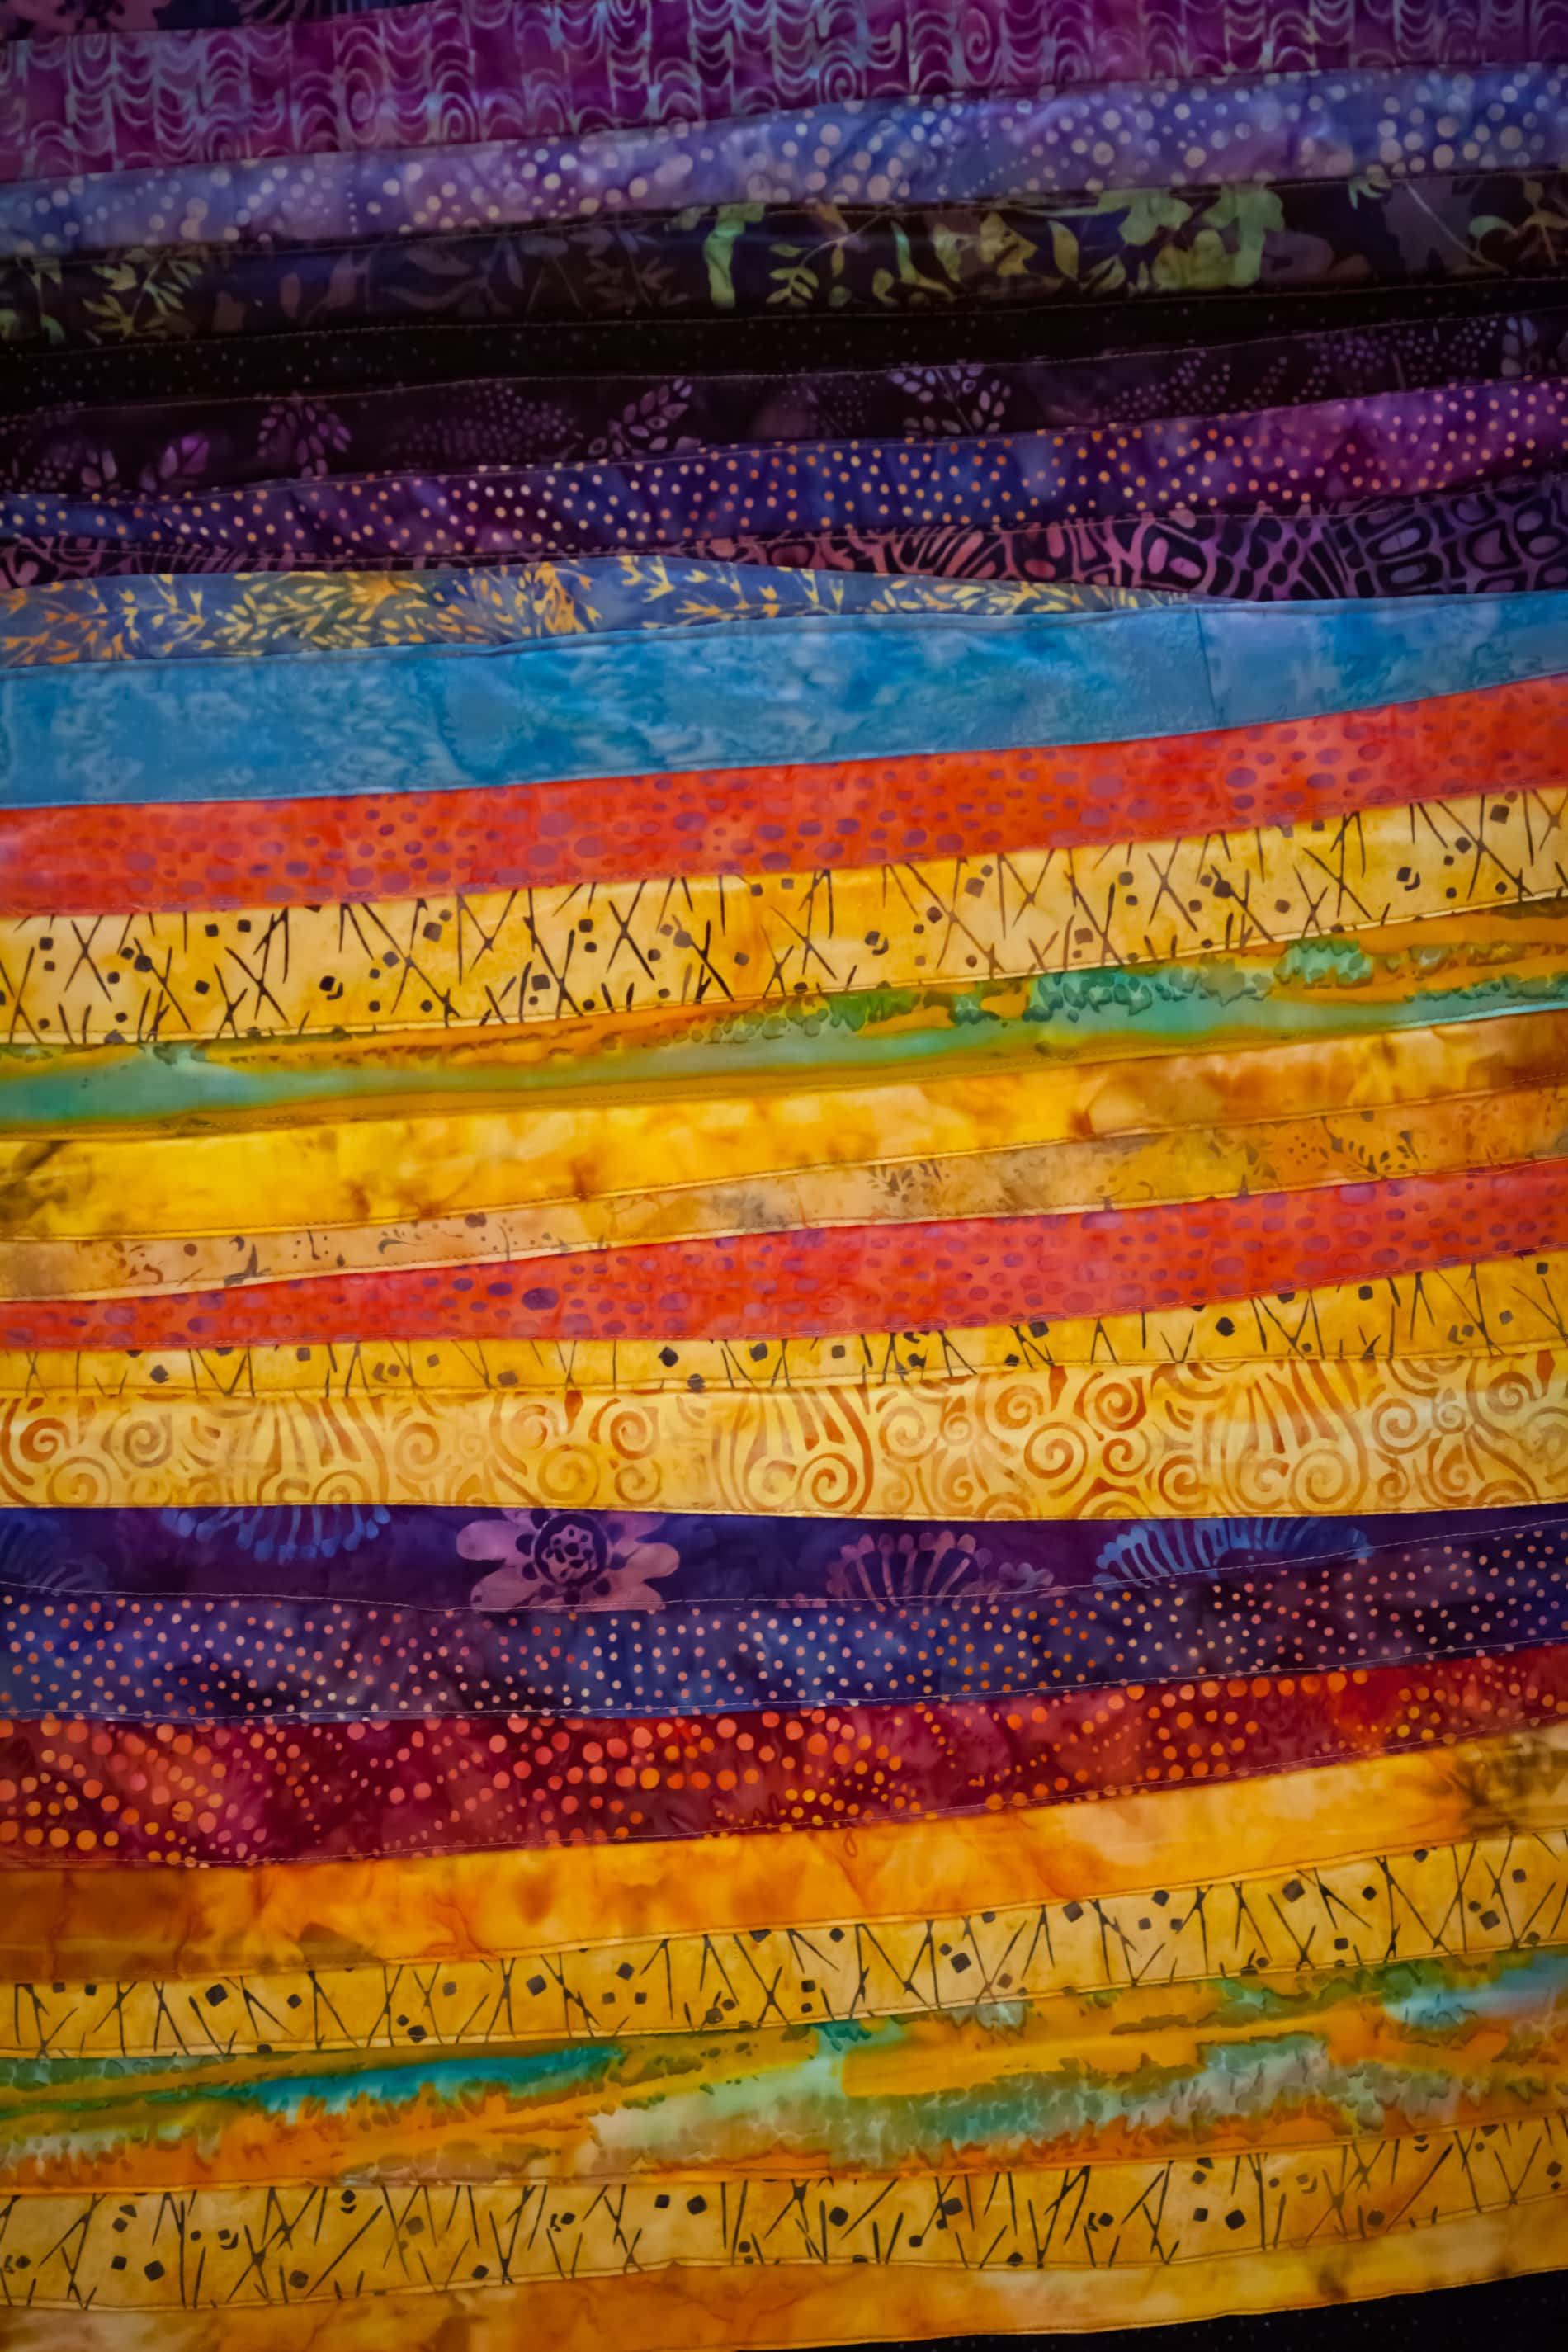 Liturgical quilted cloth in many colors